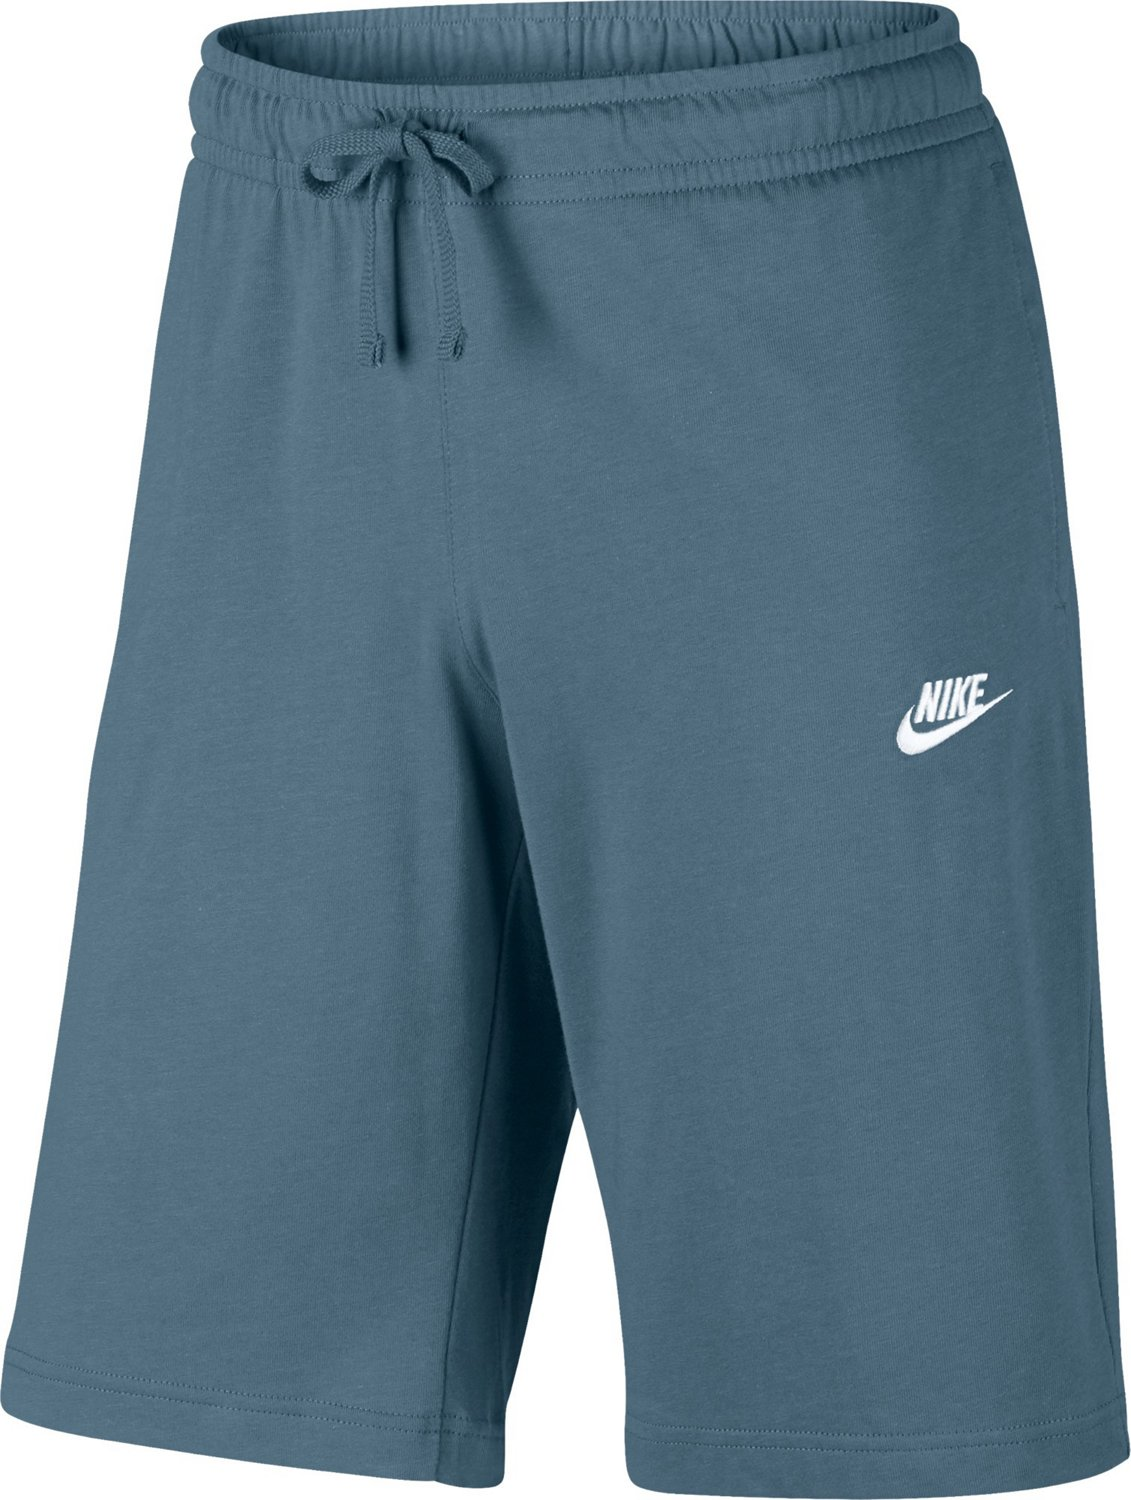 df8054bfc Display product reviews for Nike Men's Sportswear Short